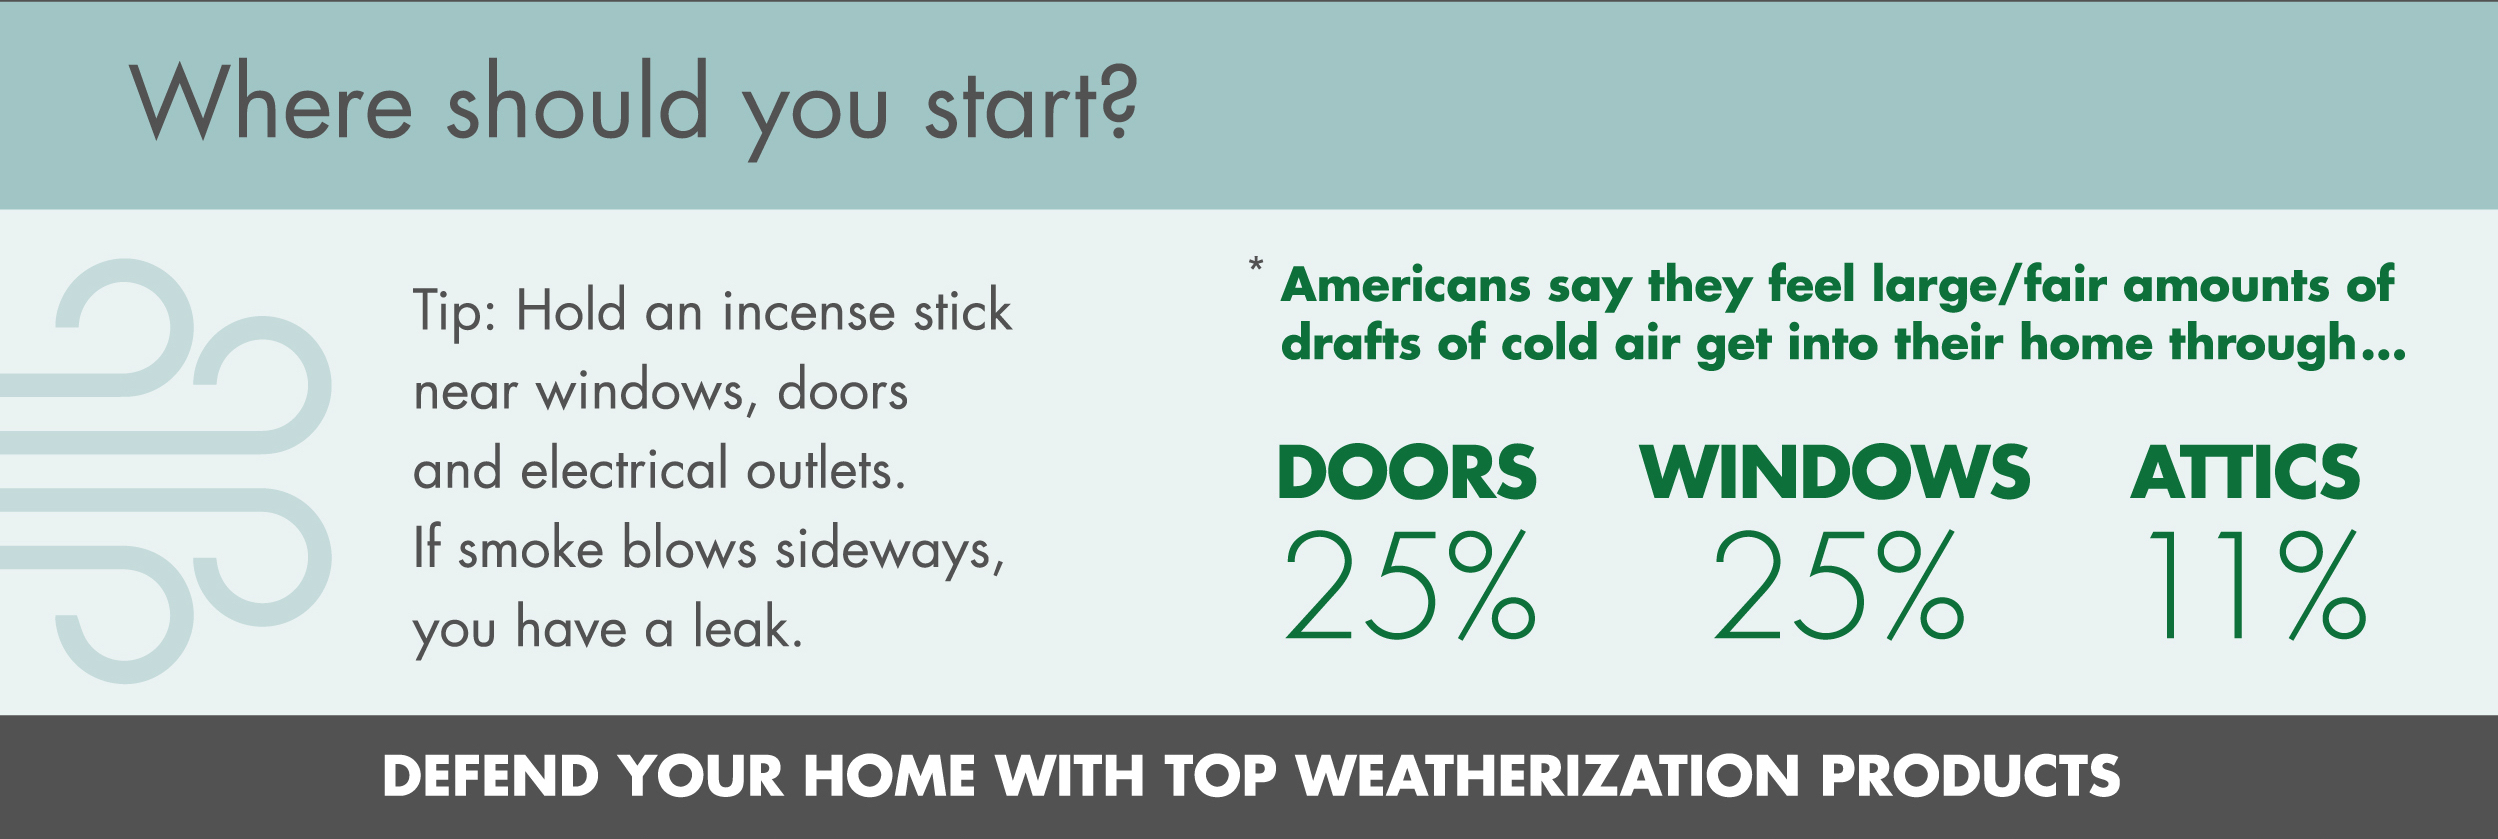 Infographic that gives the percentages of where Americans feel drafts in their homes are coming from